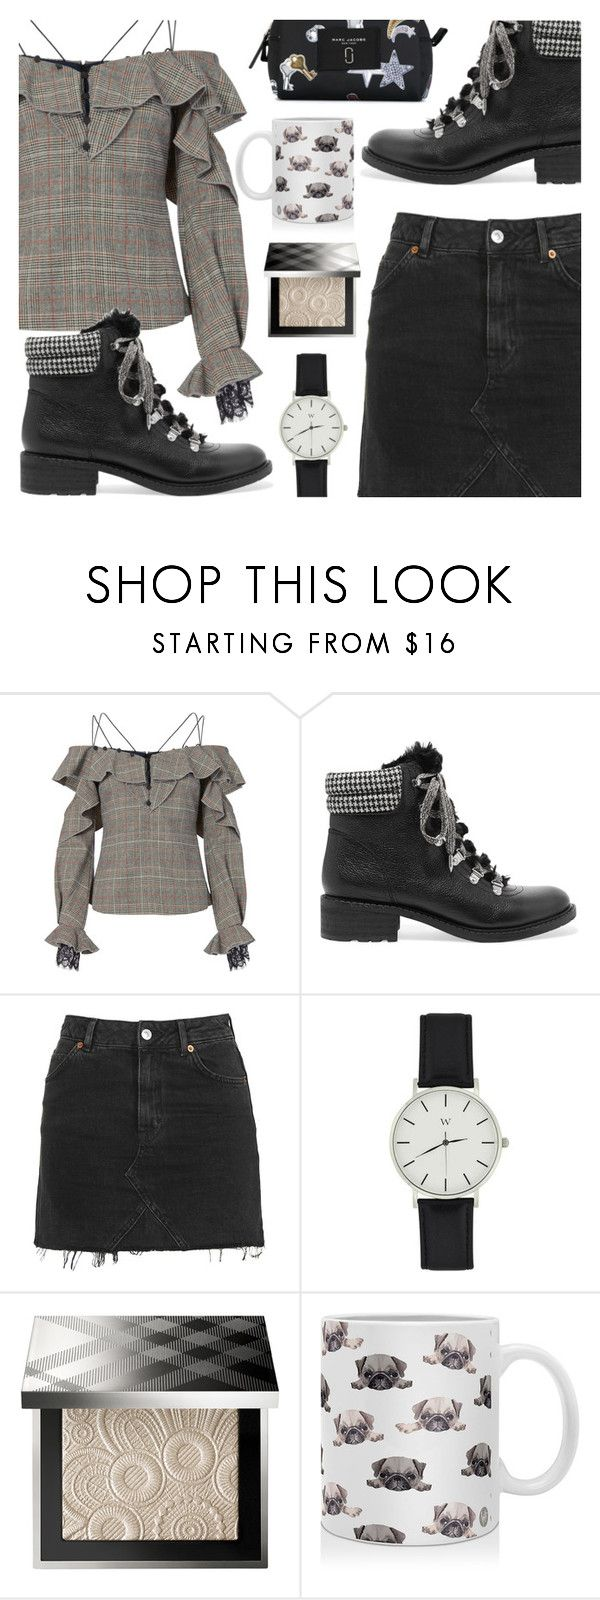 """Model Off Duty"" by ana3blue on Polyvore featuring self-portrait, Sam Edelman, Topshop, Sephora Collection, DENY Designs and Marc Jacobs"